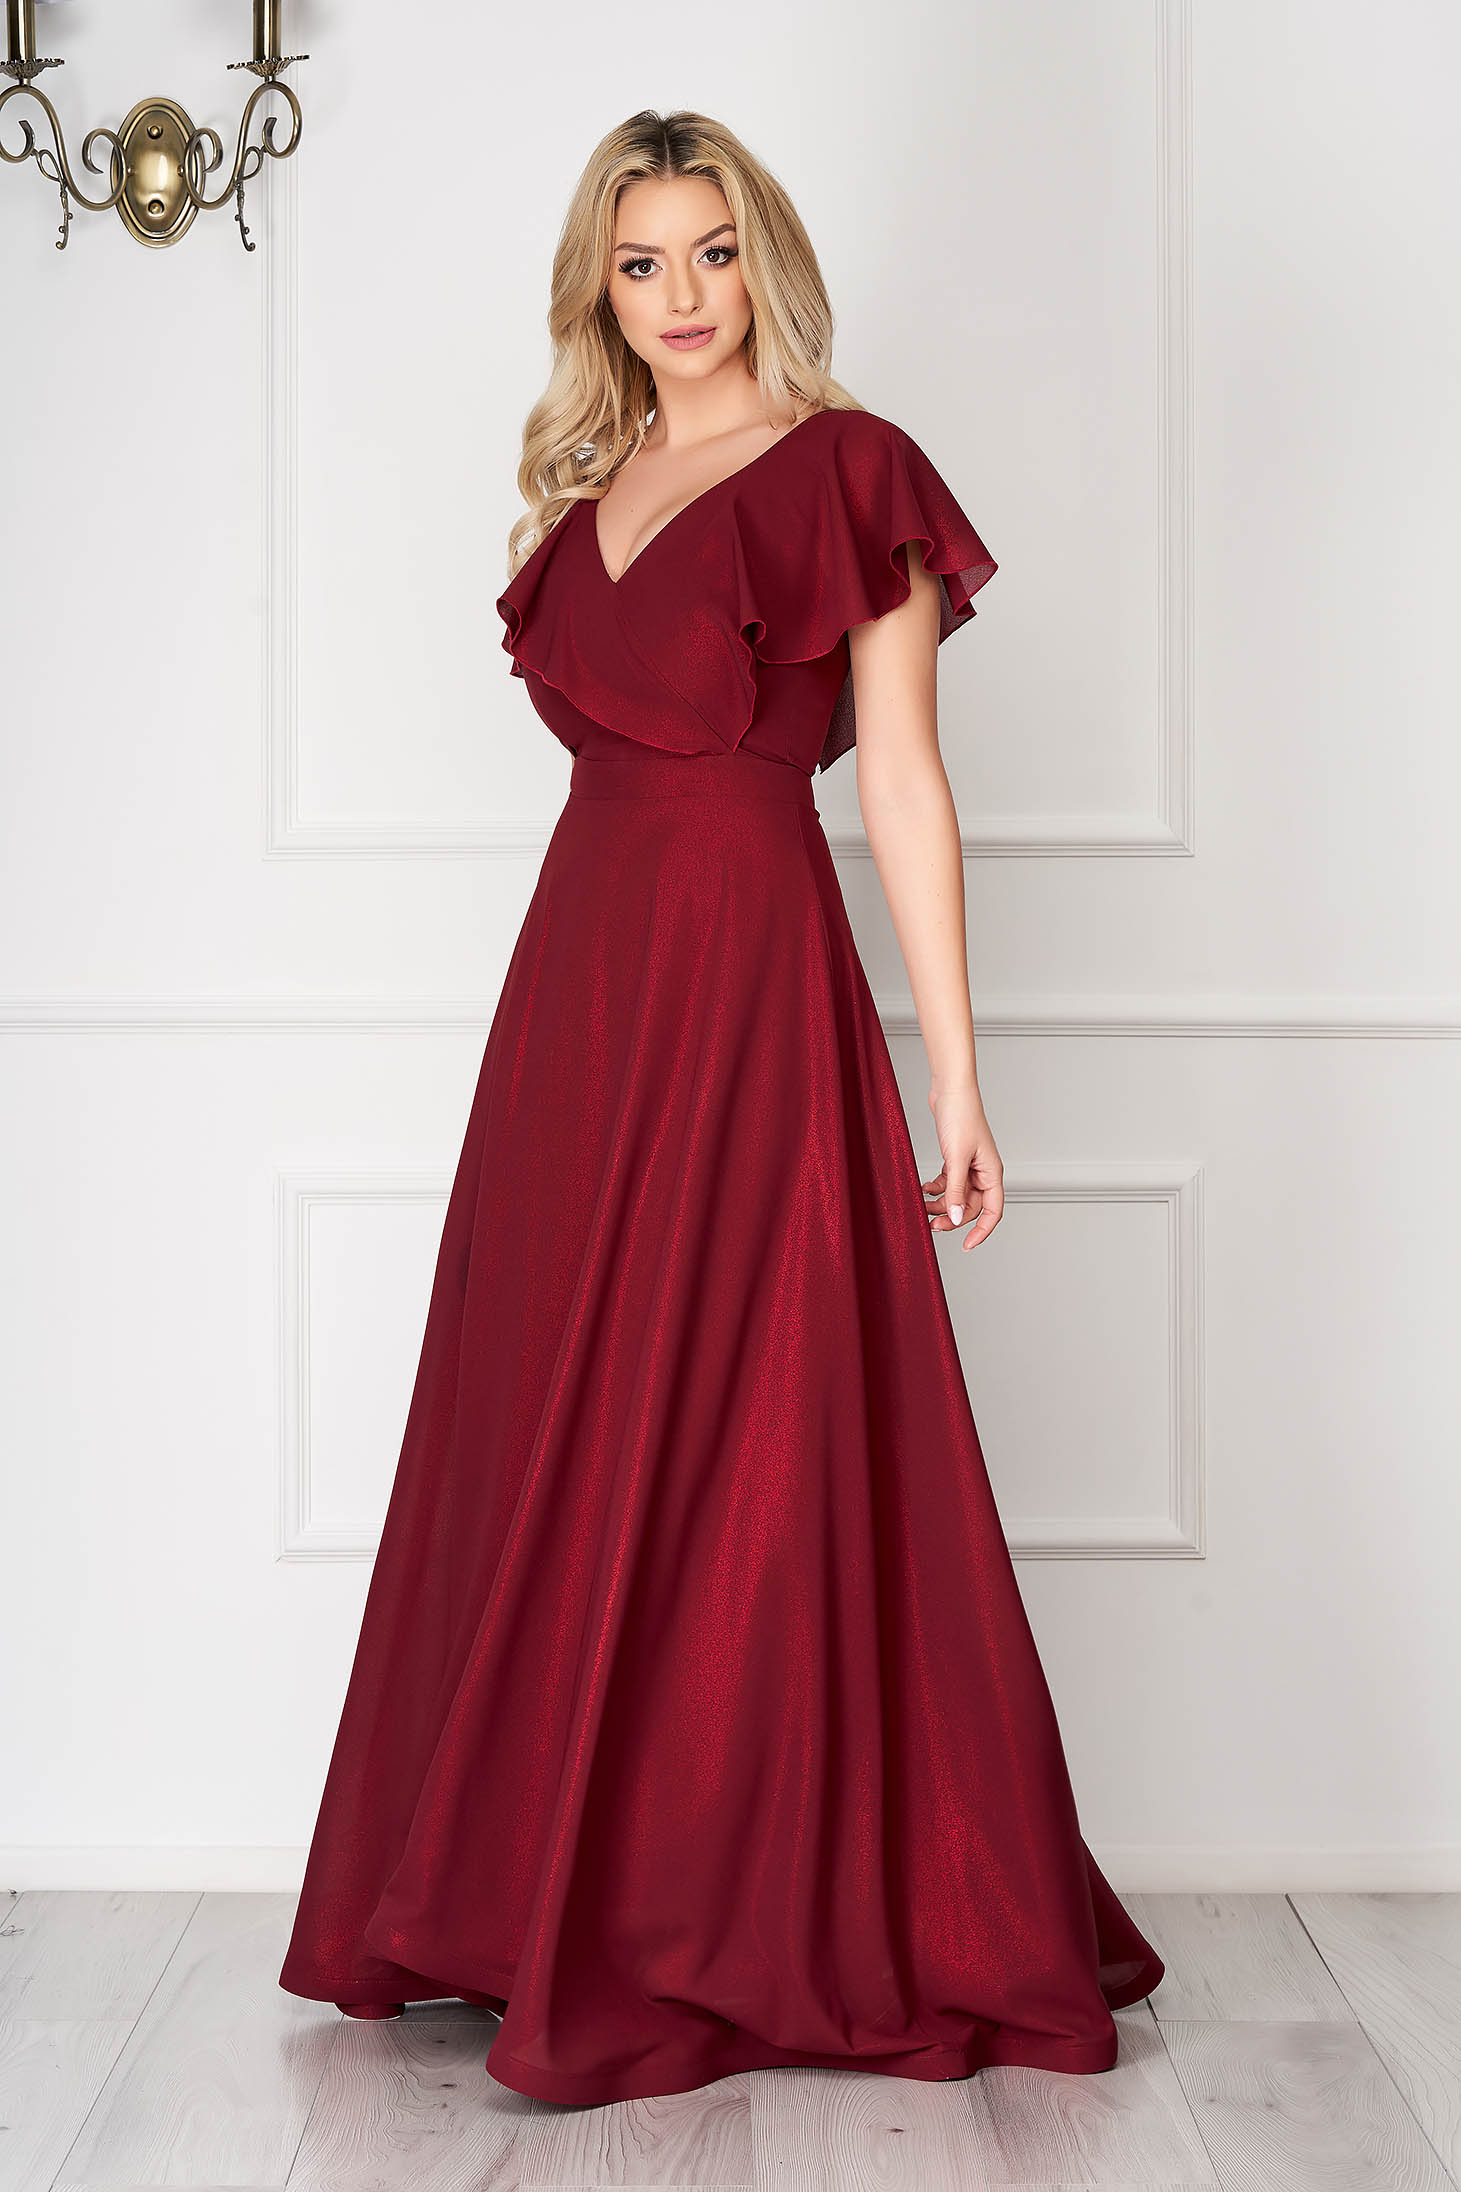 Dress StarShinerS burgundy occasional flaring cut frilly trim around cleavage line